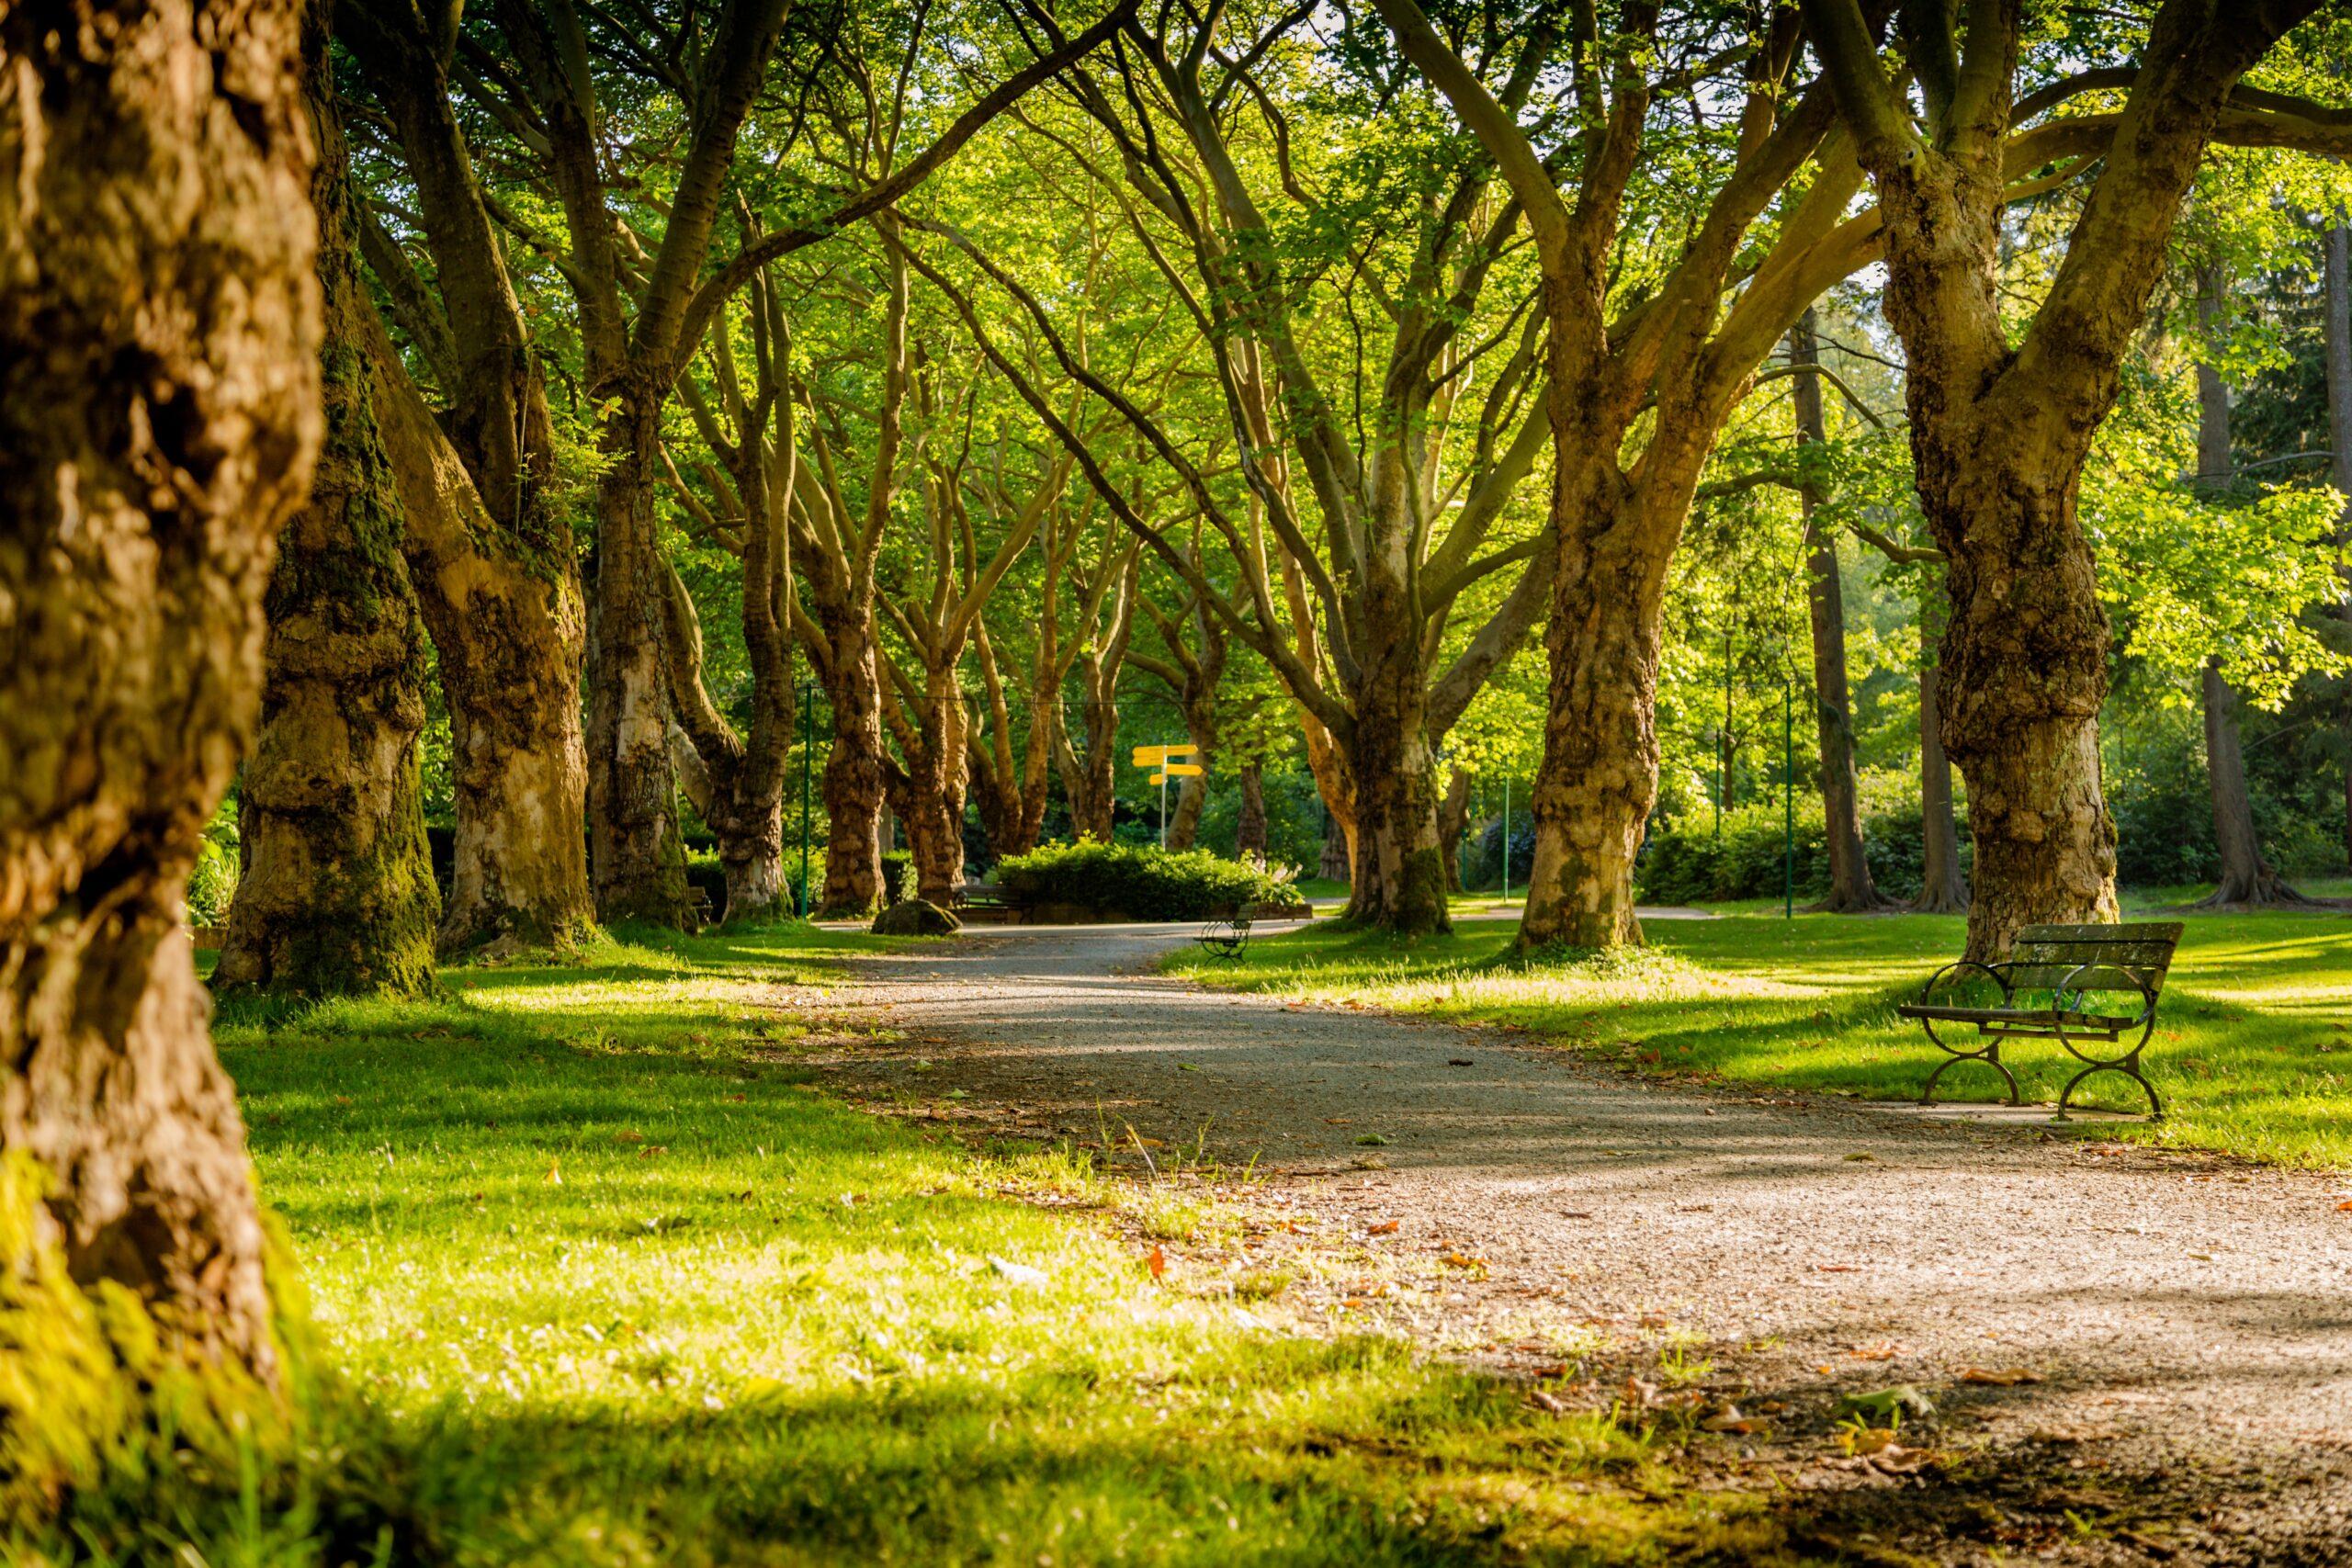 #30: Mindful Breathing in the Park (Guided Meditation)